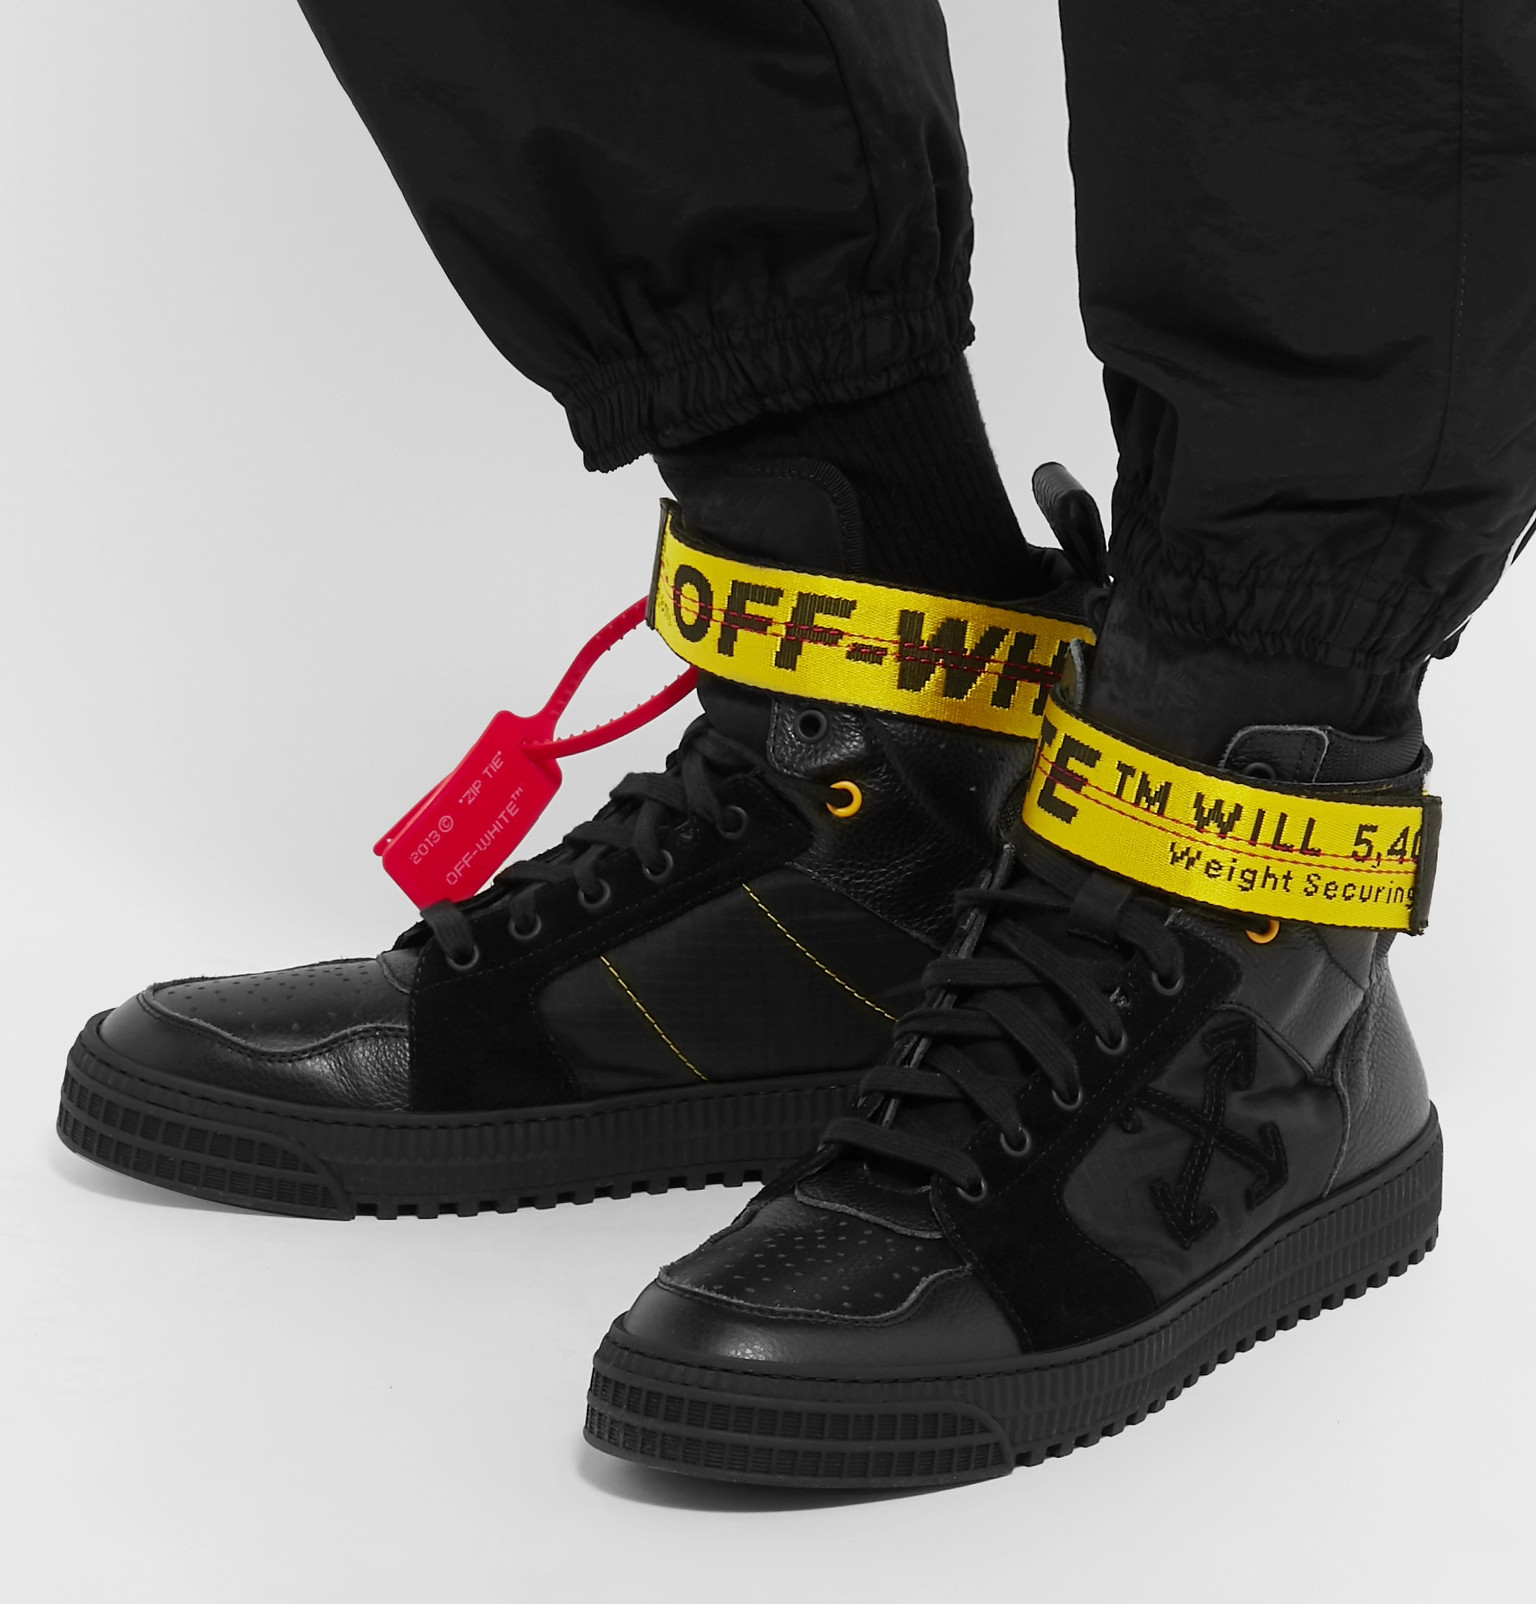 9d3068032 Off-WhiteIndustrial Full-Grain Leather, Suede and Ripstop High-Top Sneakers